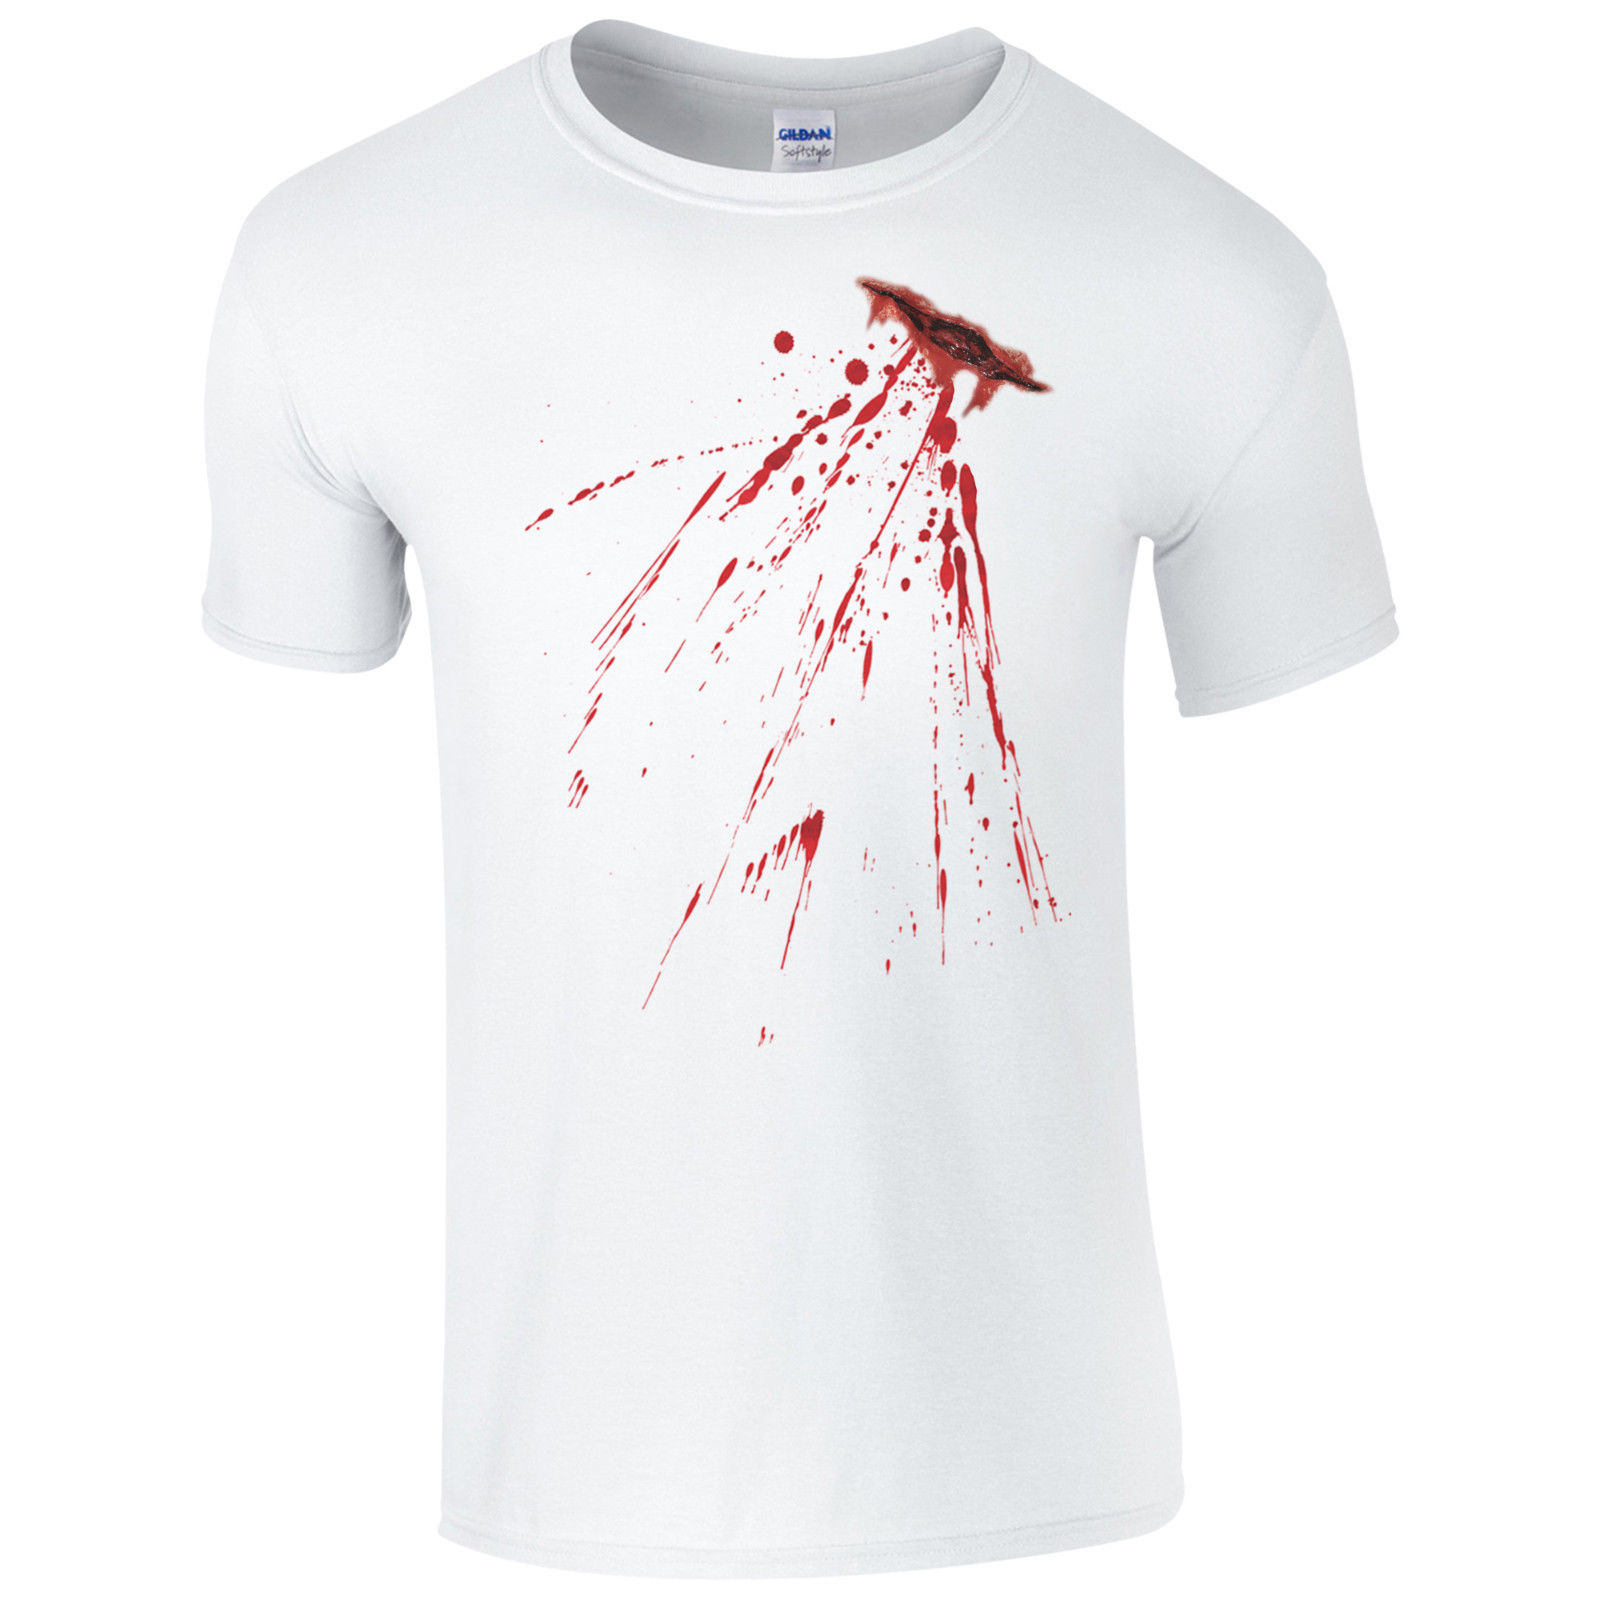 Fake Bloody Stab Wound T-Shirt - Halloween Knife Cut Stain Fancy Dress Mens Top Funny Tops Tee New Unisex free shipping